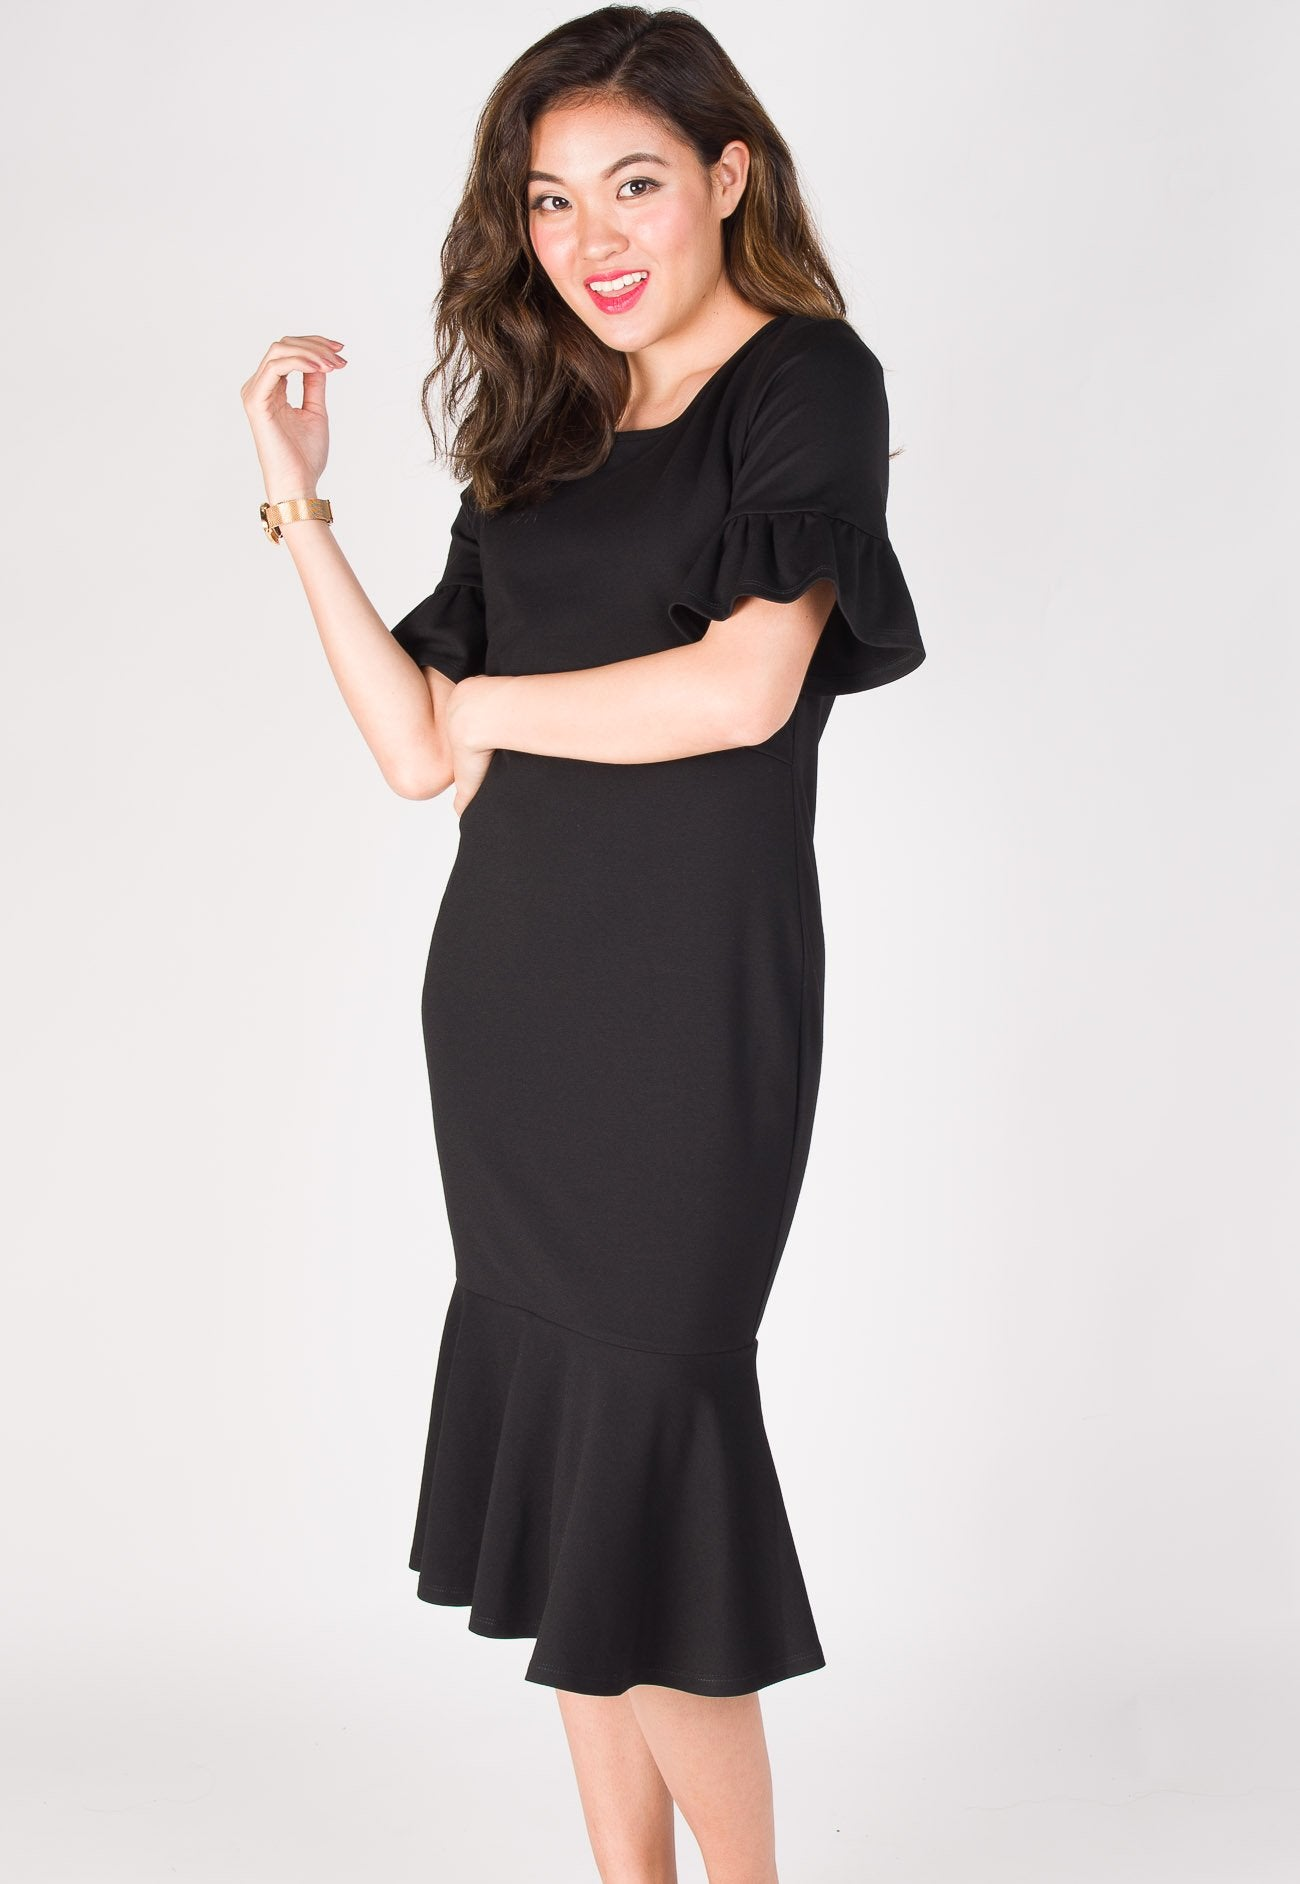 8285d002464 ... Ruffle Peplum Nursing Dress in Black by Jump Eat Cry - Maternity and nursing  wear ...